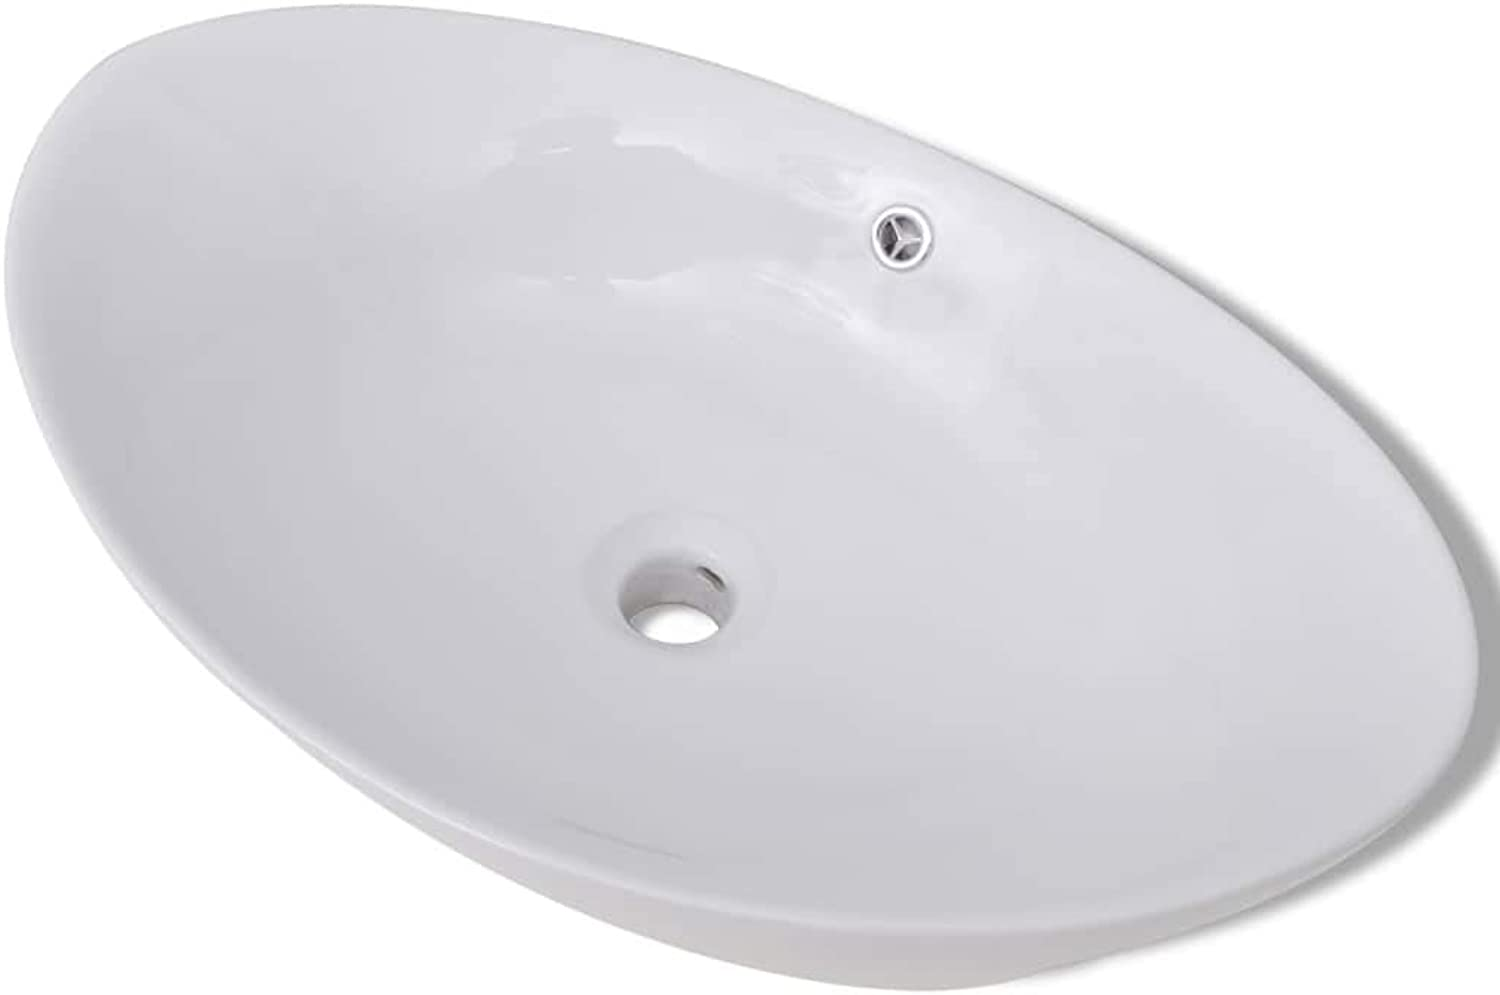 Daonanba Oval Wash Basin Practical Vessel for Bathroom, Washroom, Powder Room Ceramic White